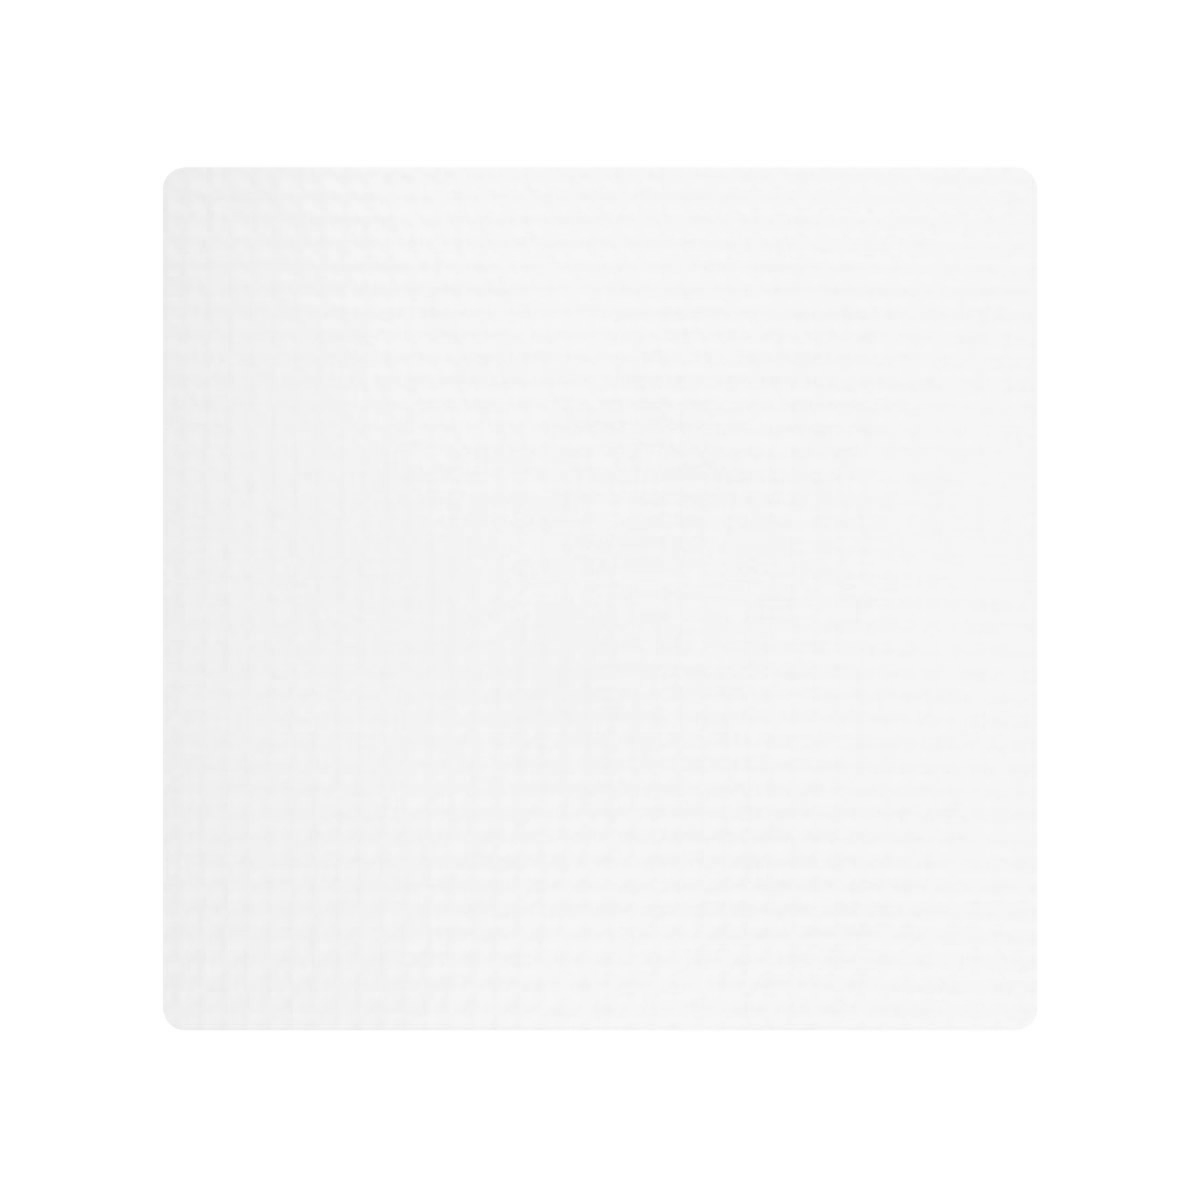 Swimming pool liner deluxe white, 165 cm Swimming pool liner deluxe white, 165 cm